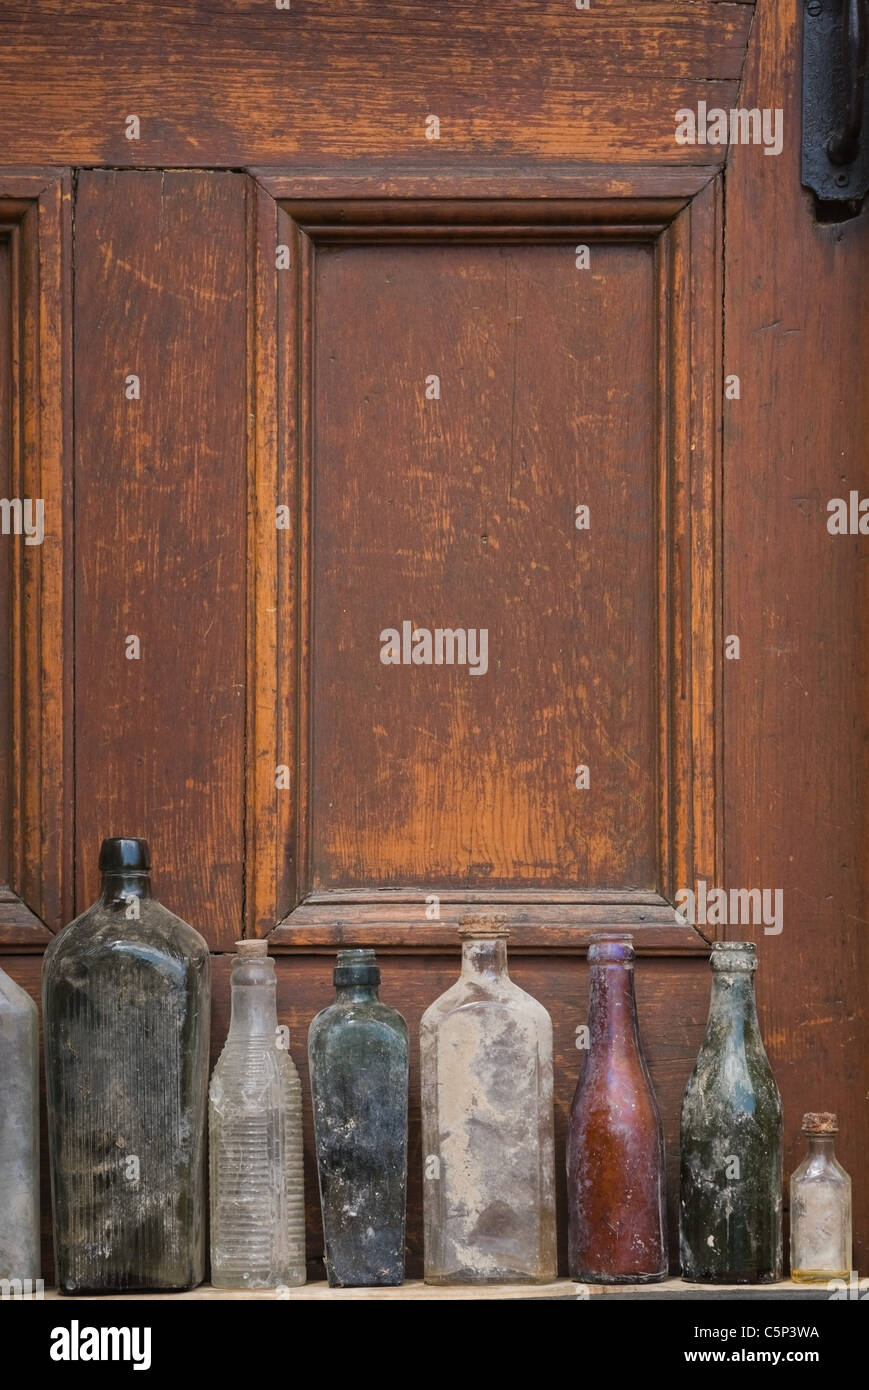 Old Glass Bottles Part - 48: Old Glass Bottles In A Row